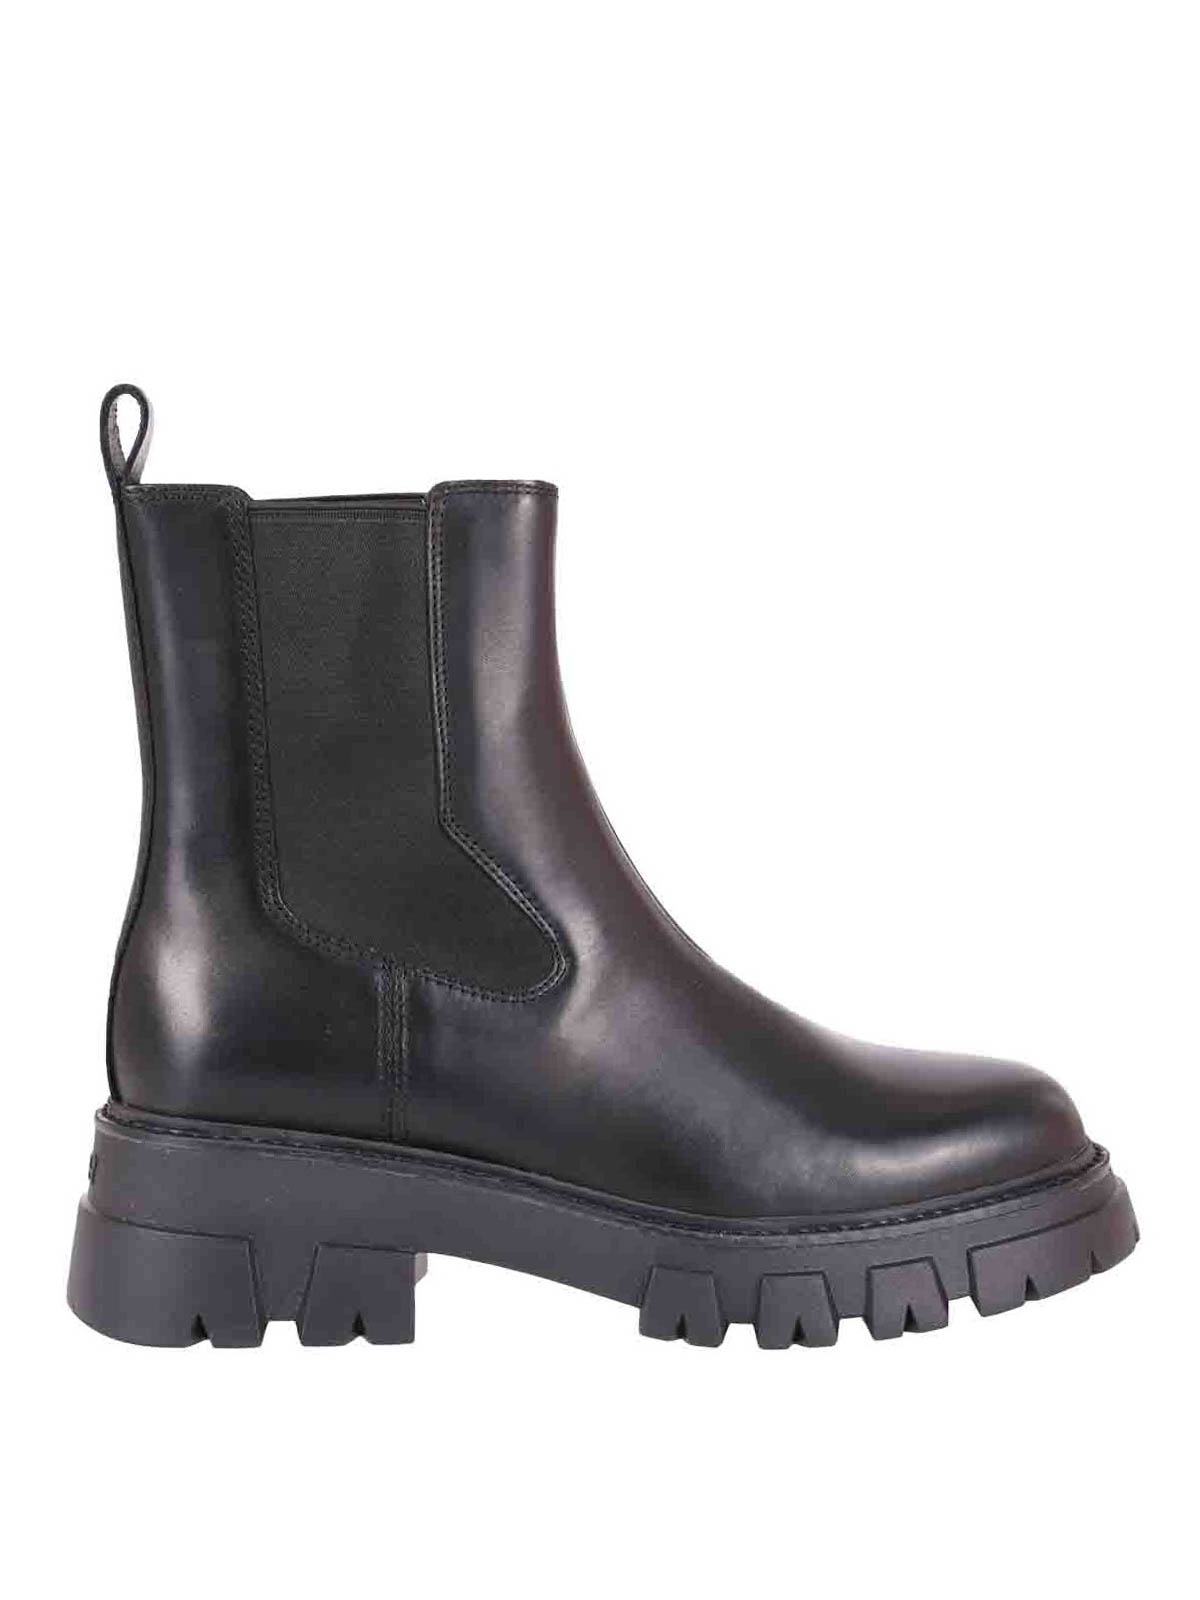 Ash LEATHER BEATLES BOOTS